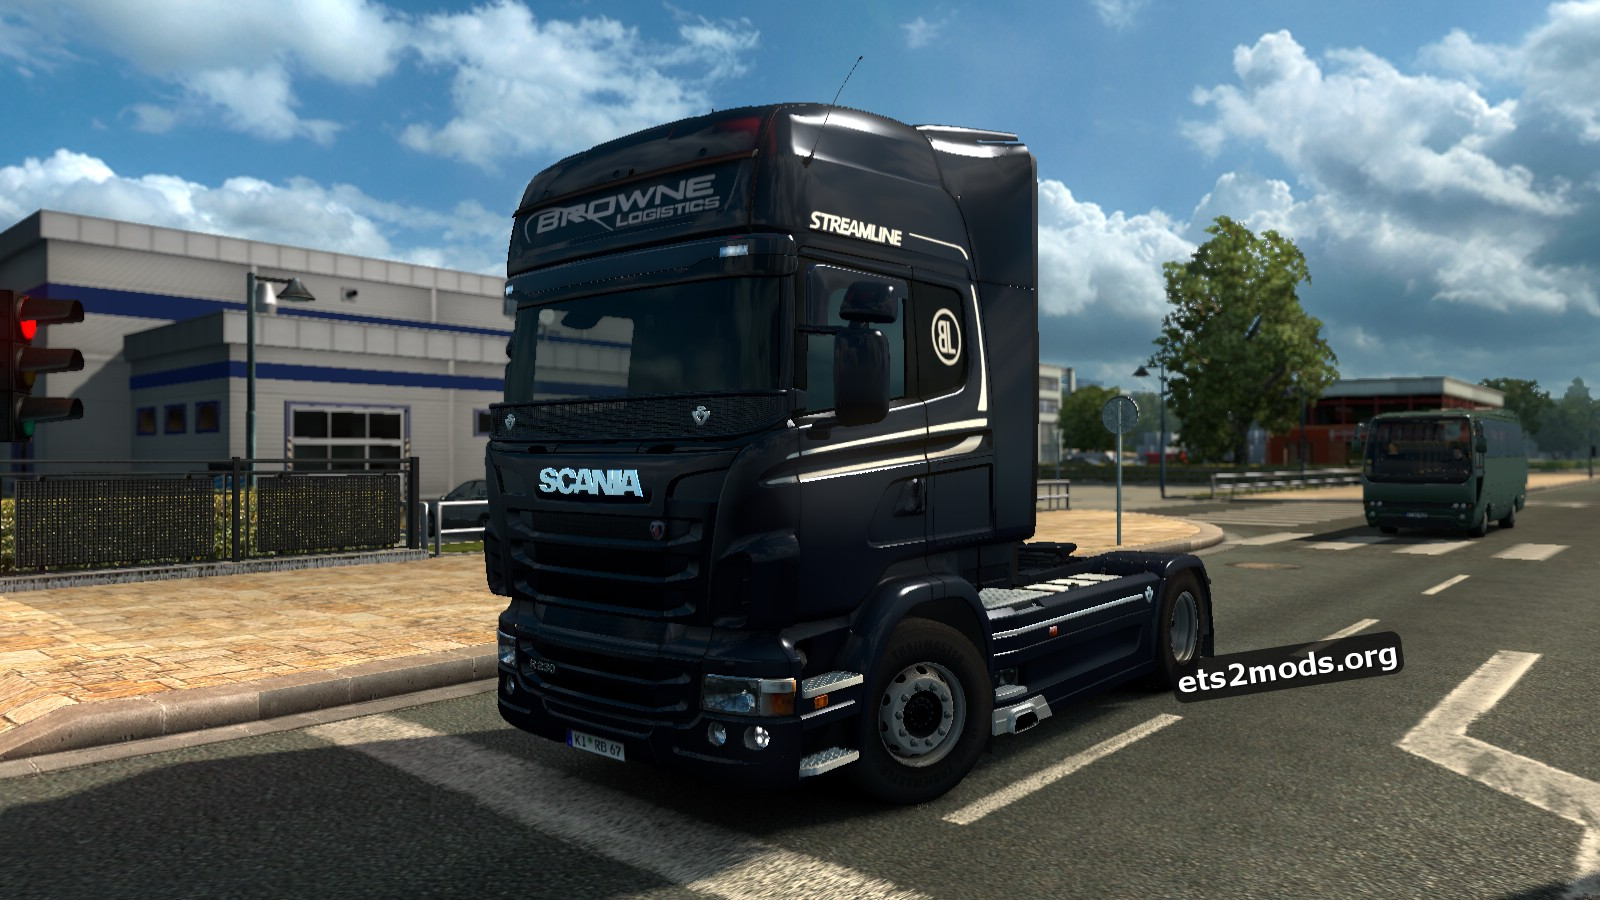 Browne Logistics Skin for Scania RJL